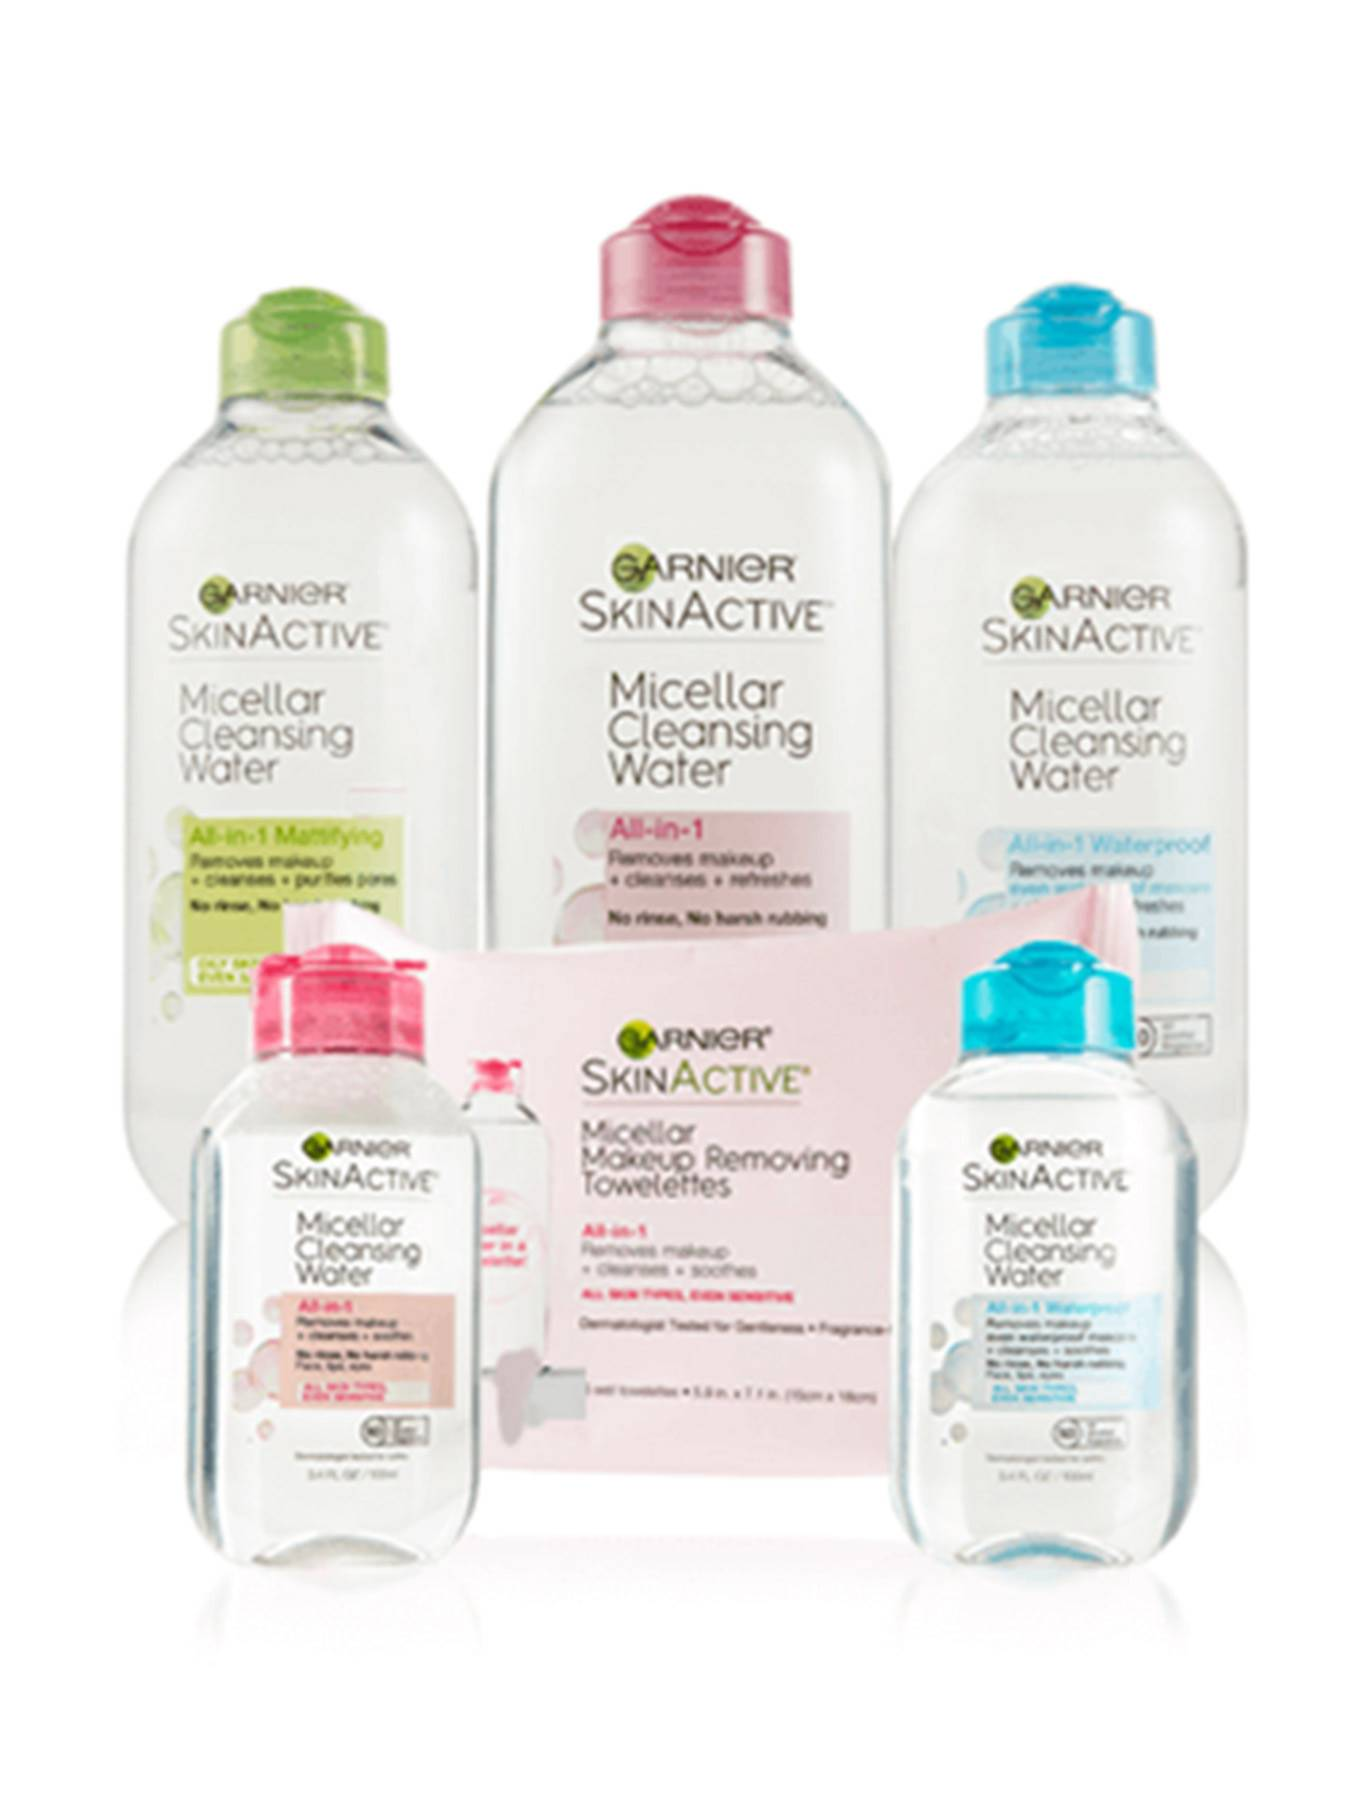 Micellar Cleansing Water All-in-1 Mattifying, All-in-1, and All-in-1 13.5oz bottles sit behind the Micellar Makeup Removing Towelettes and the All-in-1 and All-in-1 Waterproof Travel size bottles on a white reflective background.